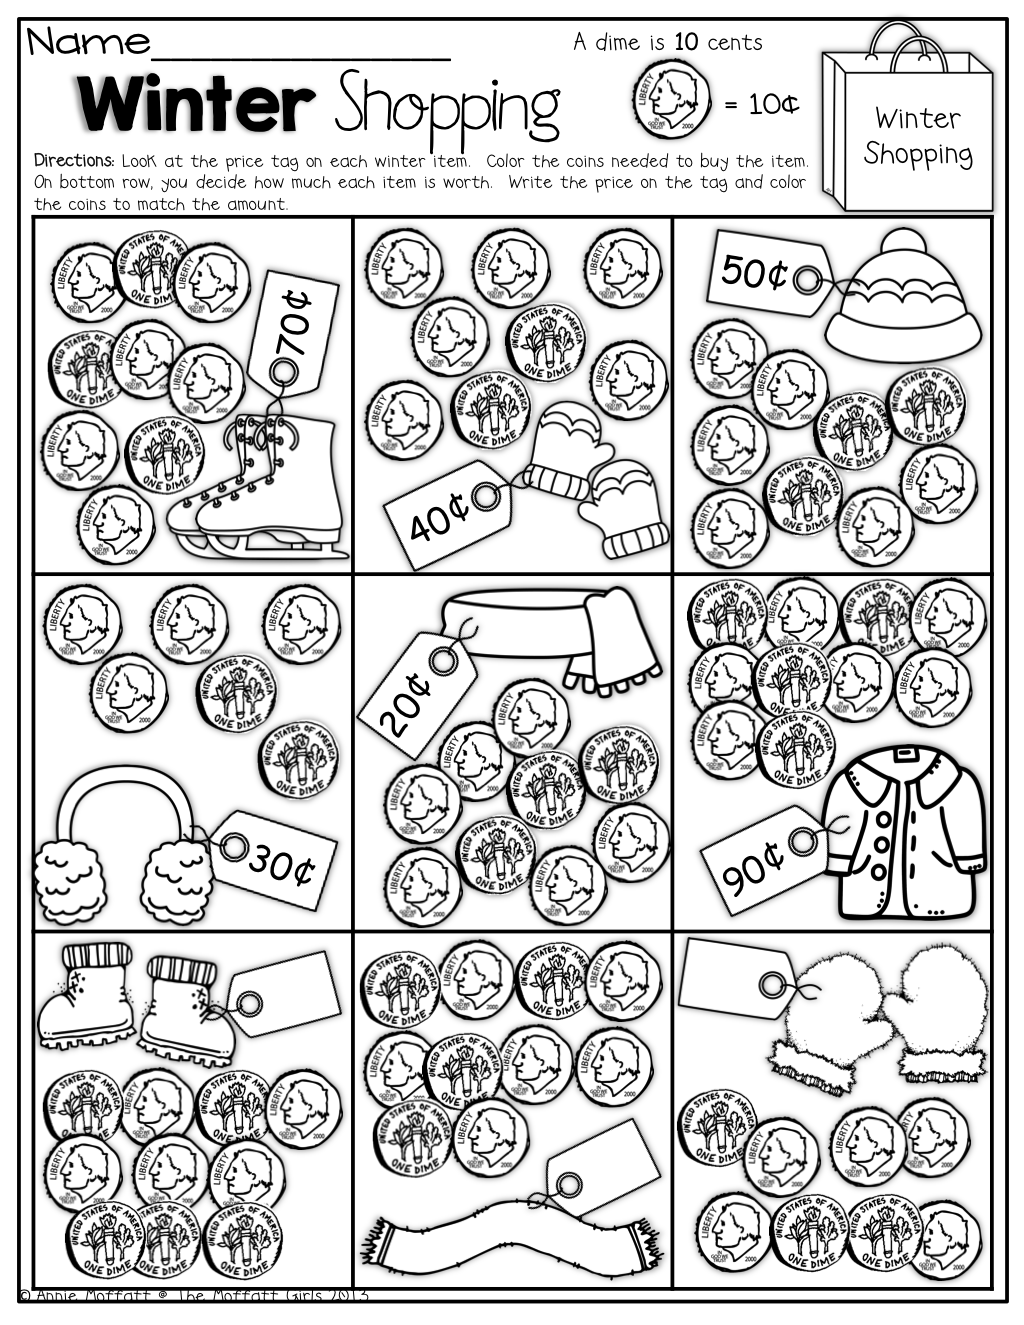 Color The Coins Needed To Buy Each Item Fun Way To